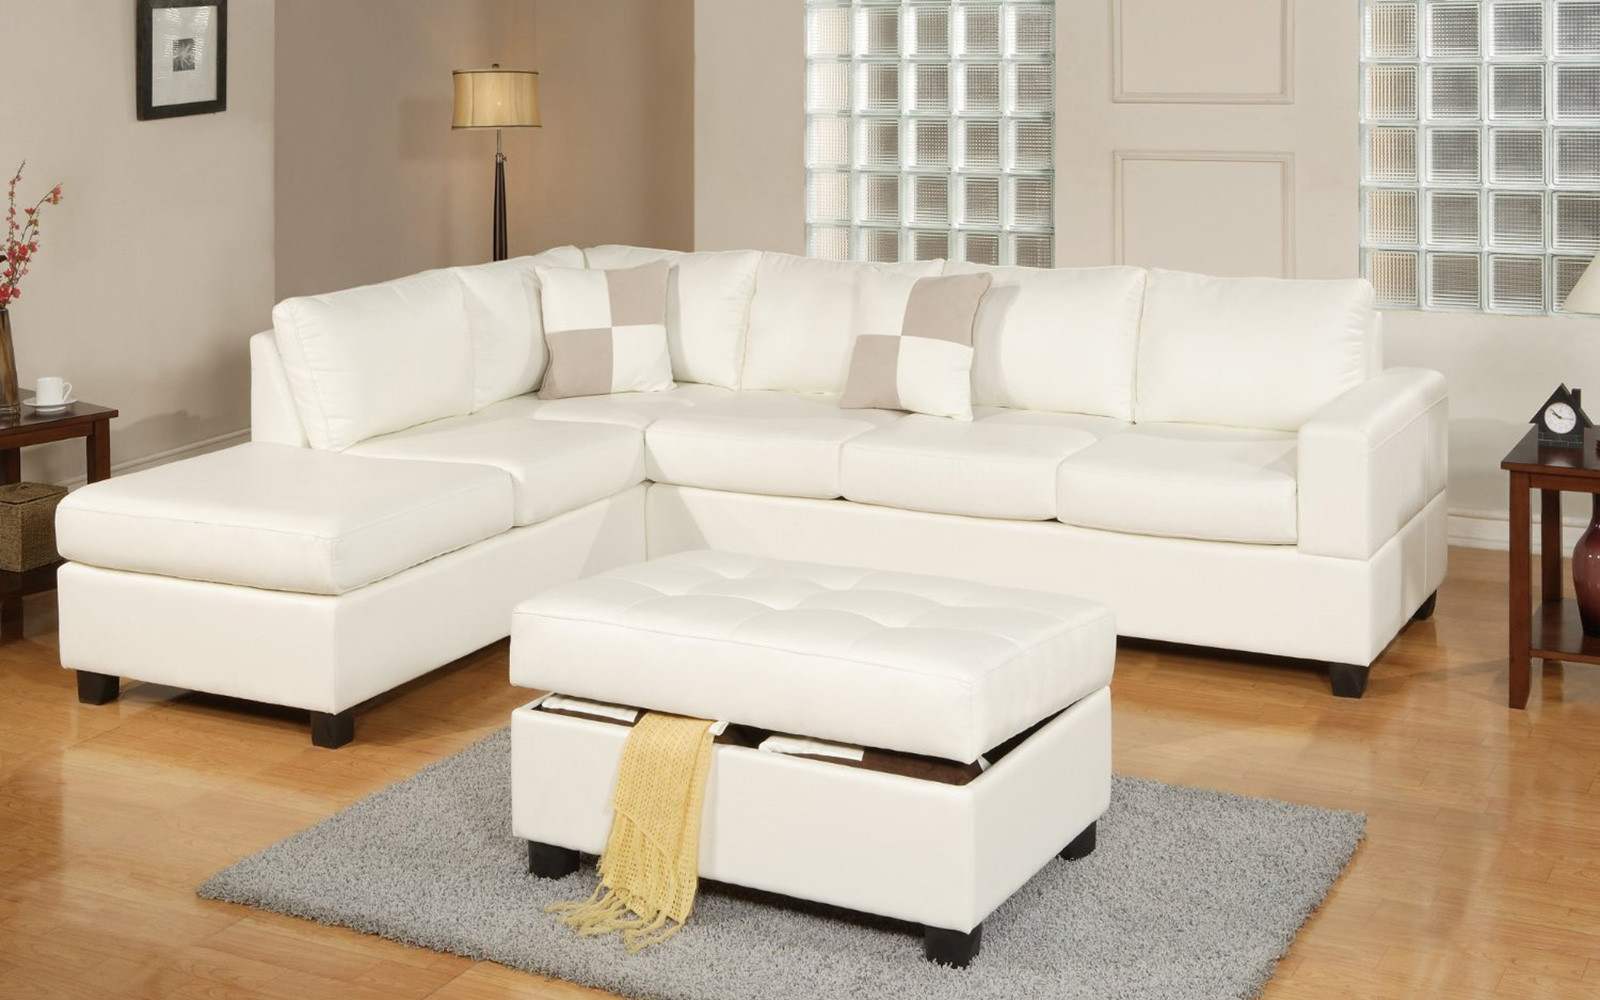 Bobkona soft touch reversible bonded leather match 3 piece sectional sofa set white walmart com